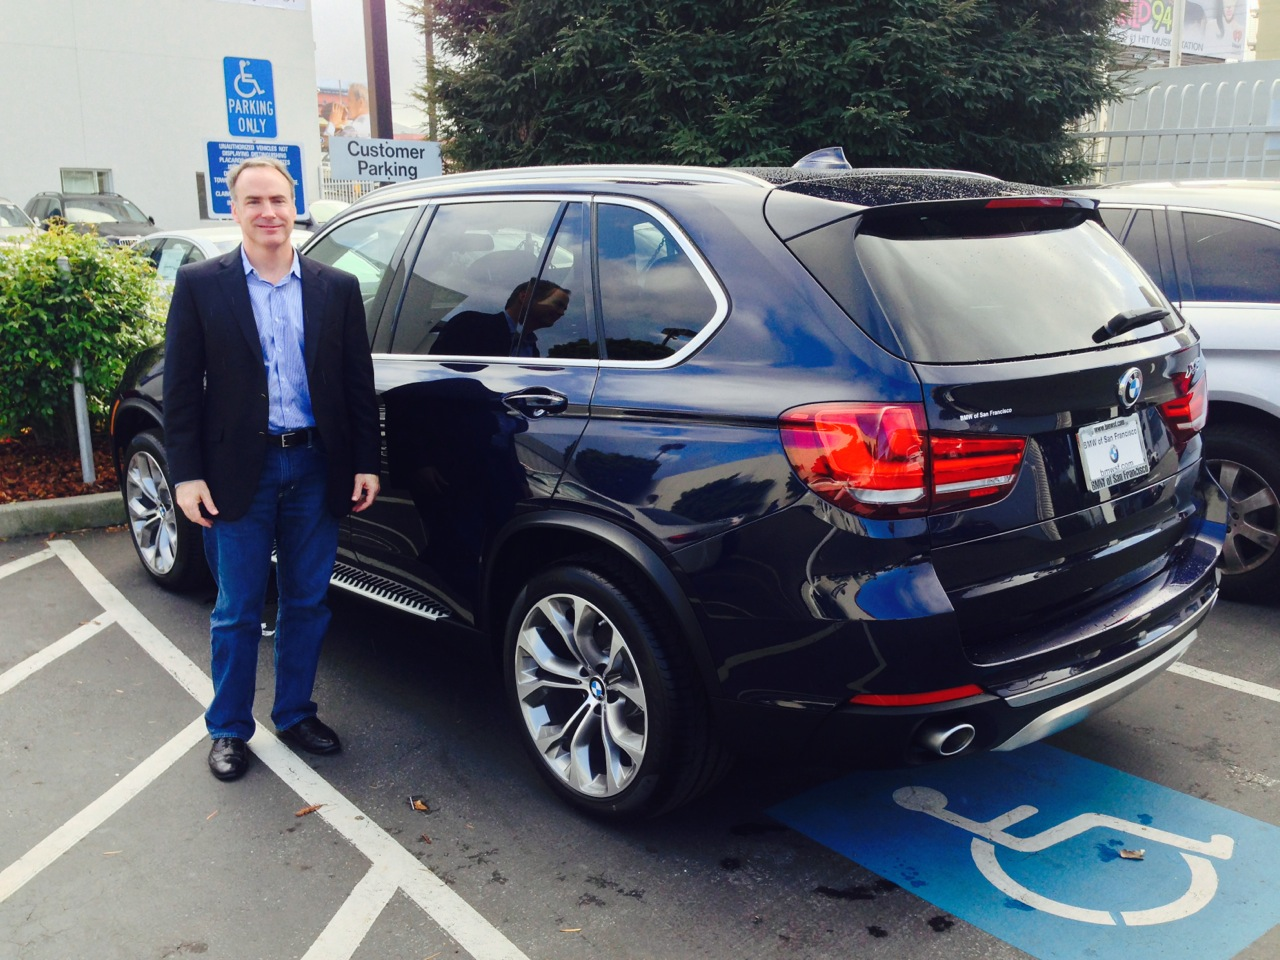 Took Delivery Of My X5 Yesterday